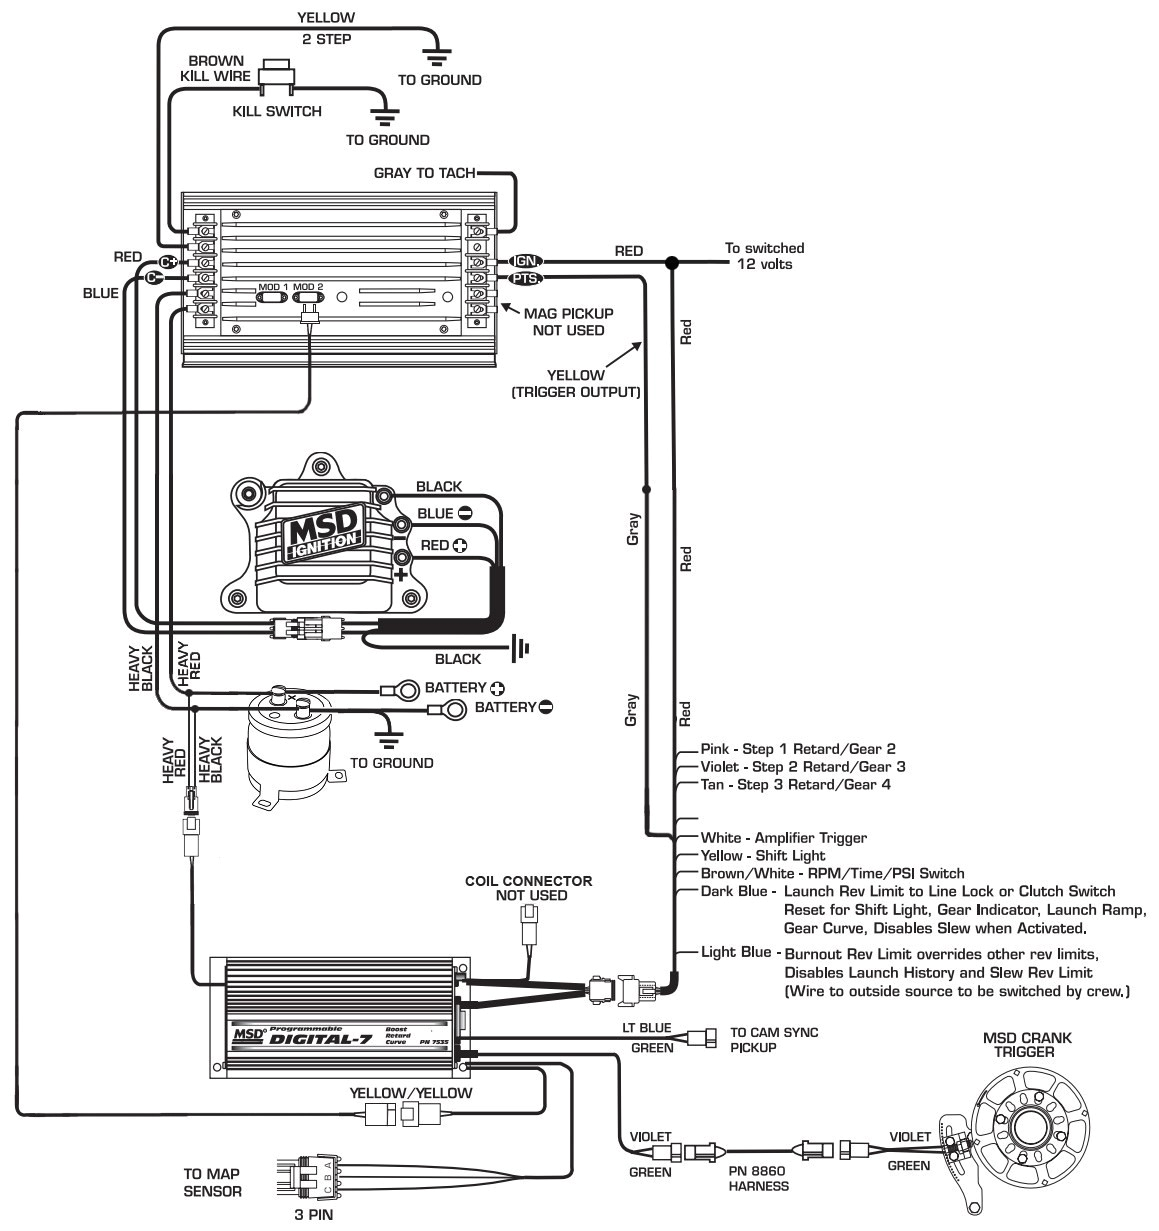 msd wiring diagram inspirational msd digital dis 4 wiring diagram schematic diagrams